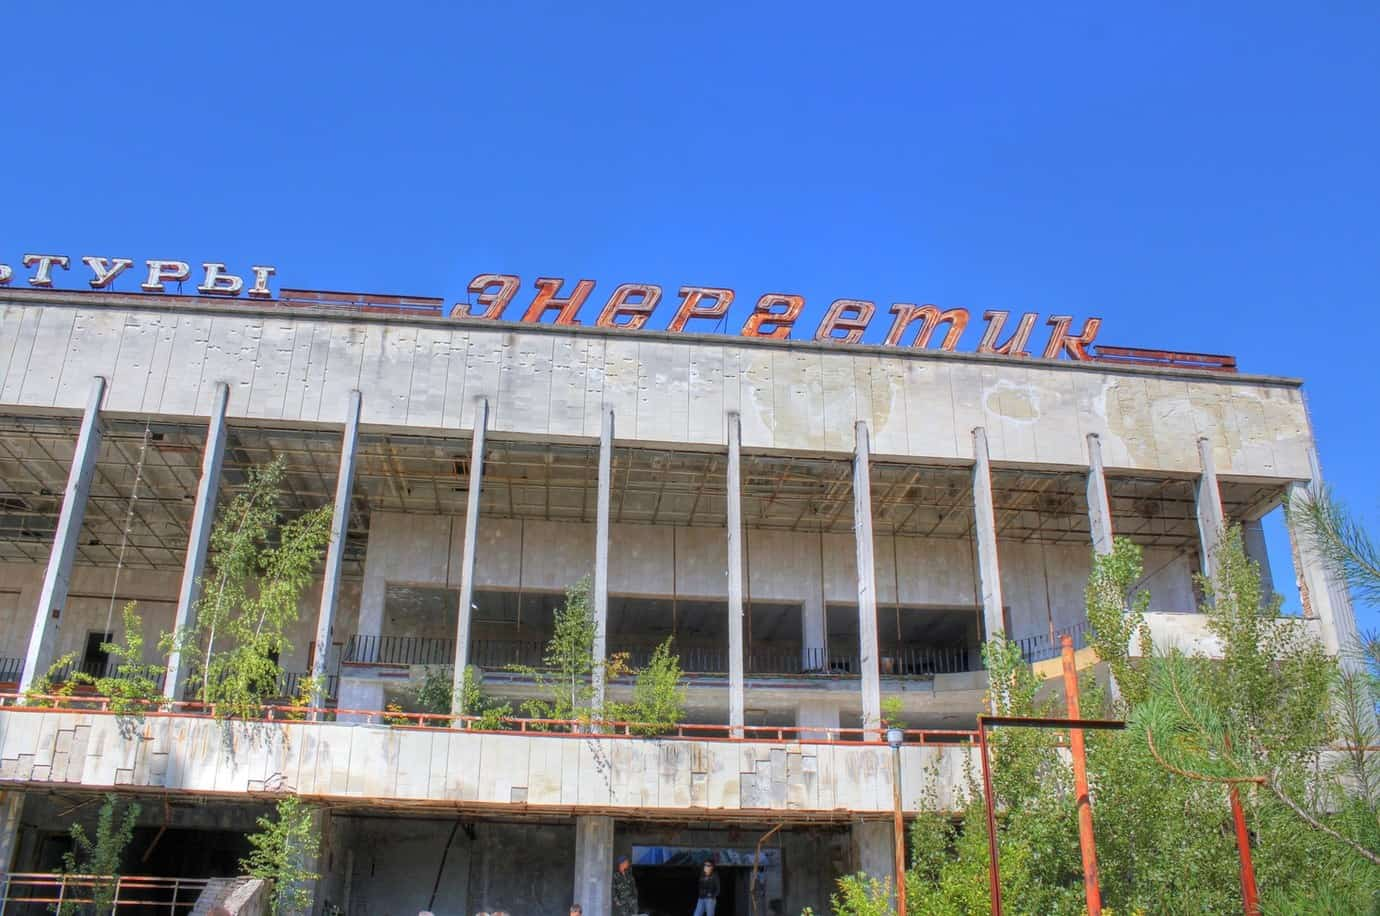 The Pripyat Energetic community centre, which housed a theatre, library, and dancing room.